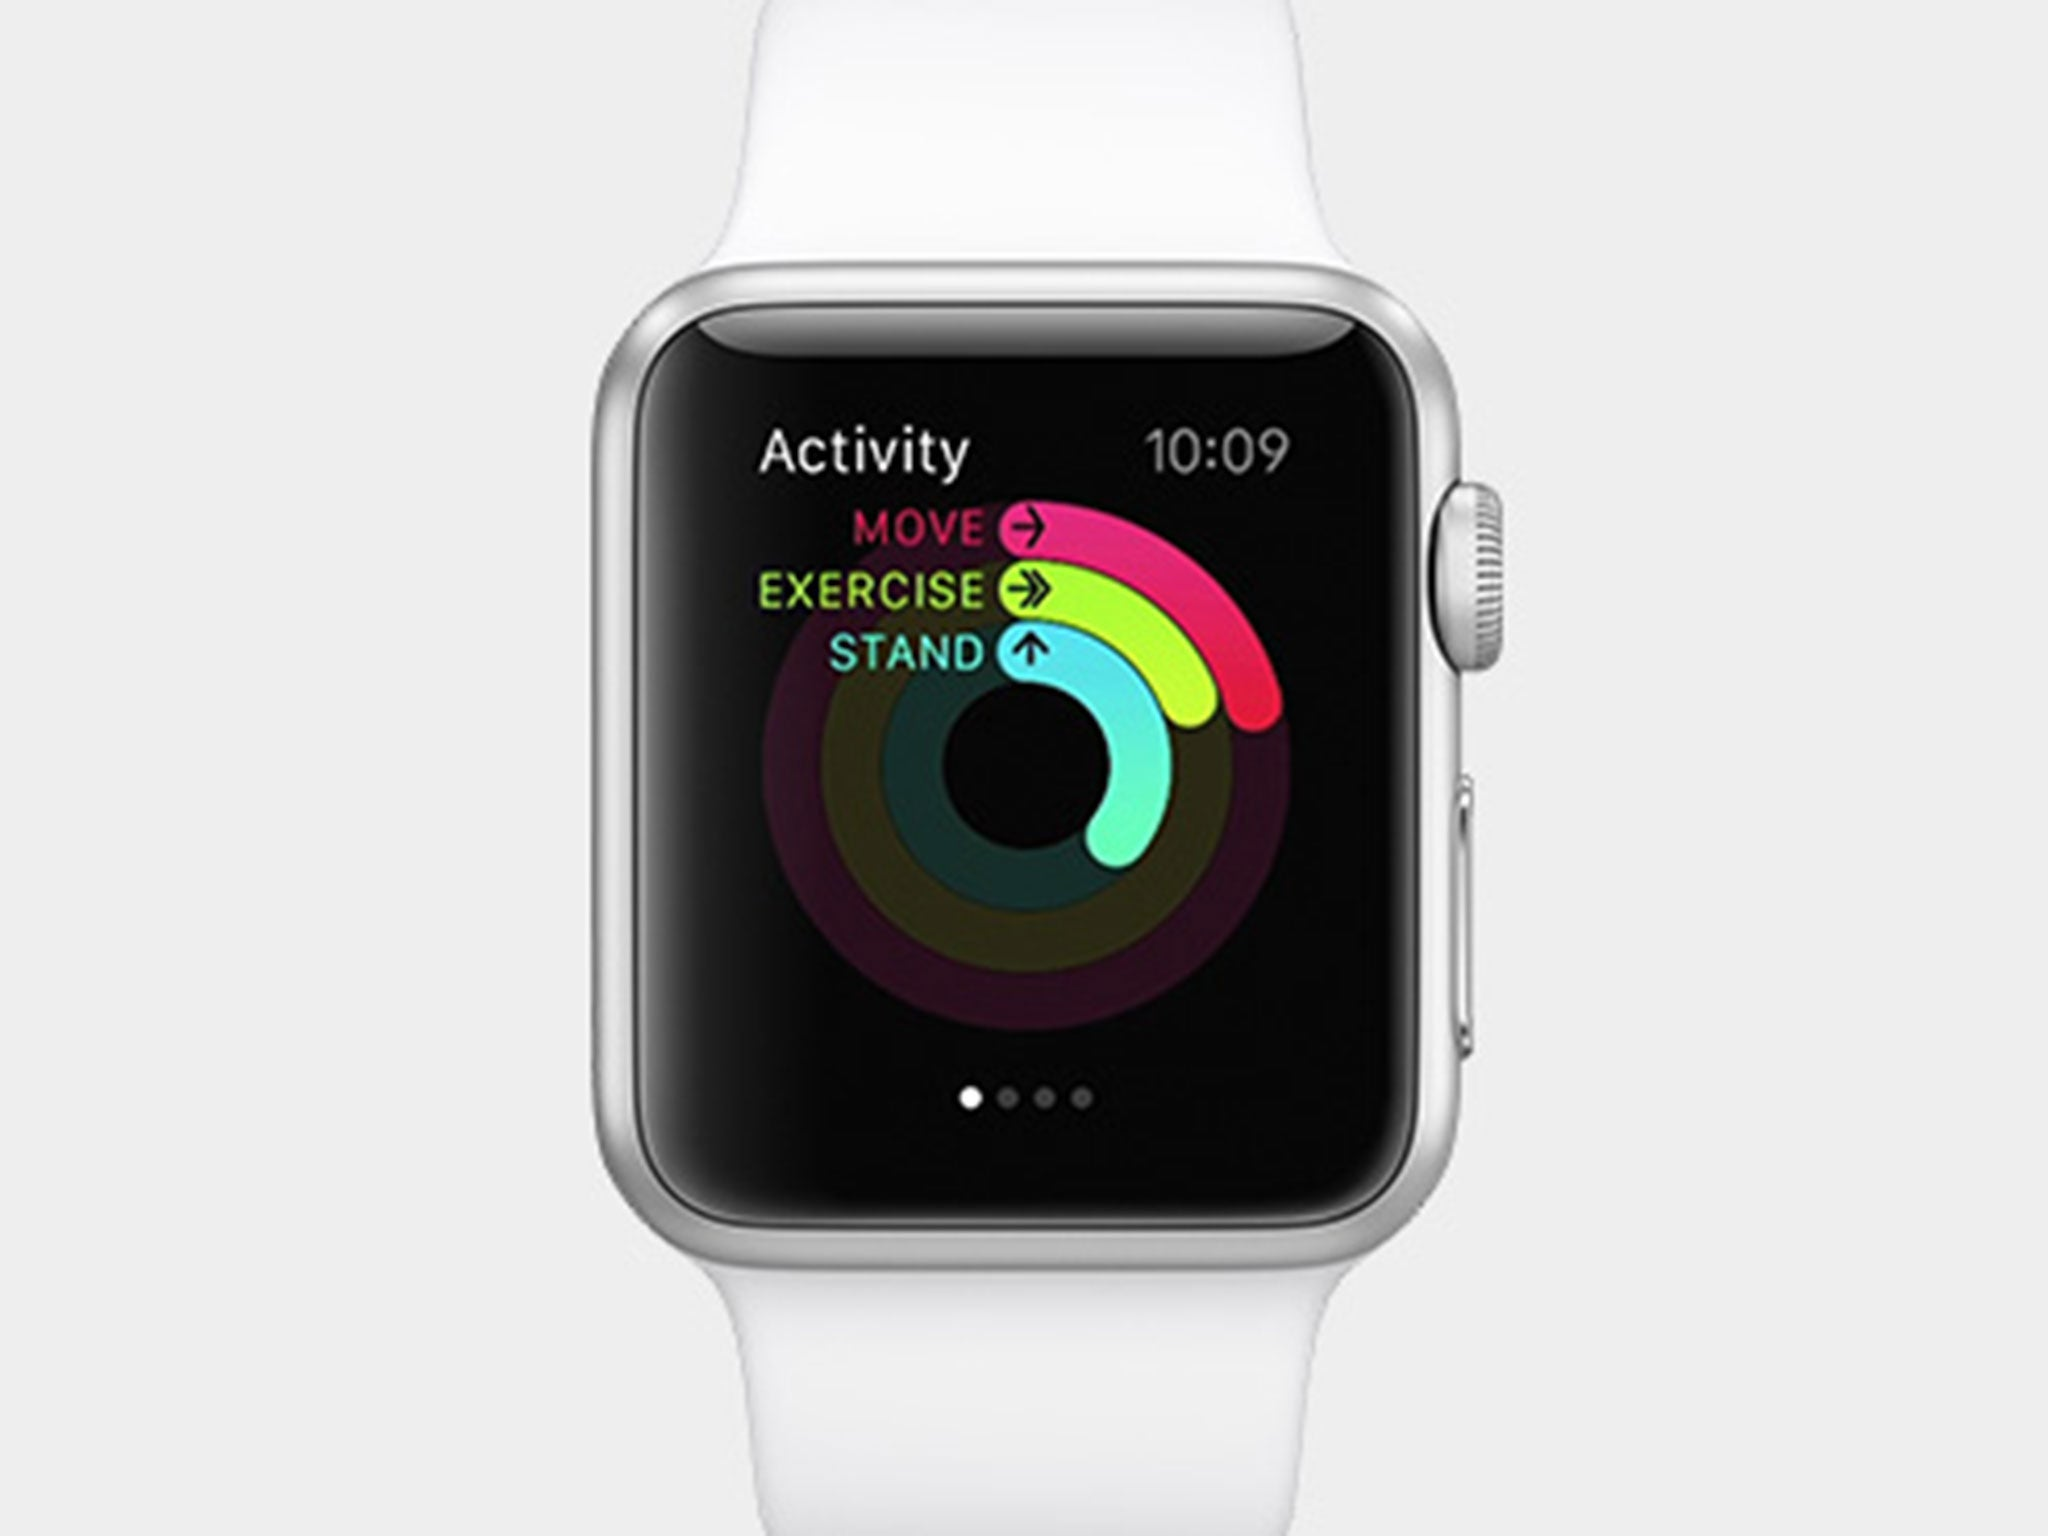 Apple Watch will ruin your life and I'm ashamed to have one